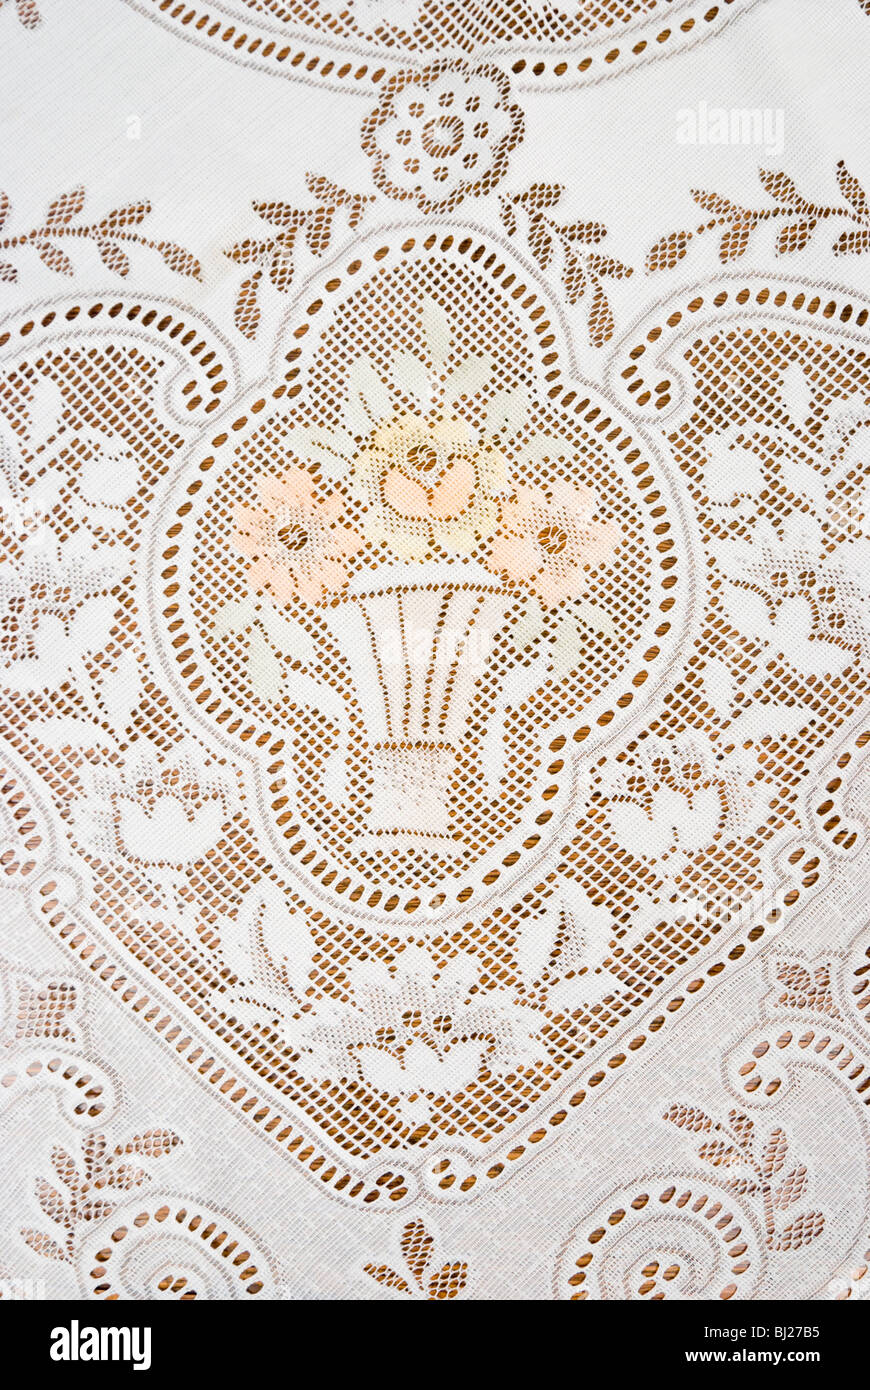 Picture of a lace tablecloth with floral design and vase. - Stock Image